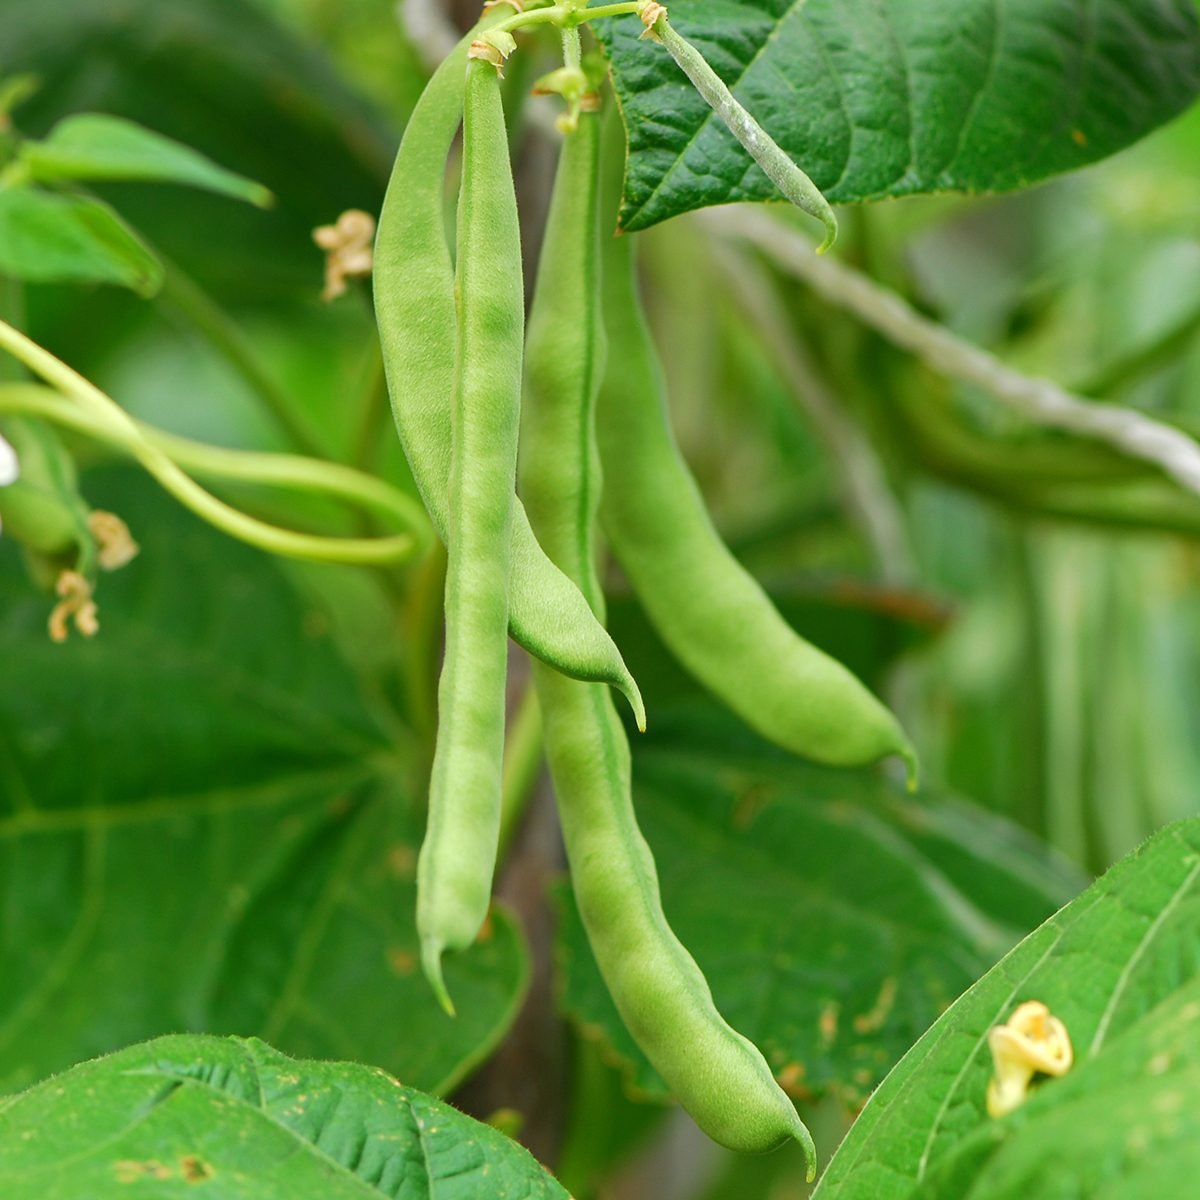 Climbing beans are growing.